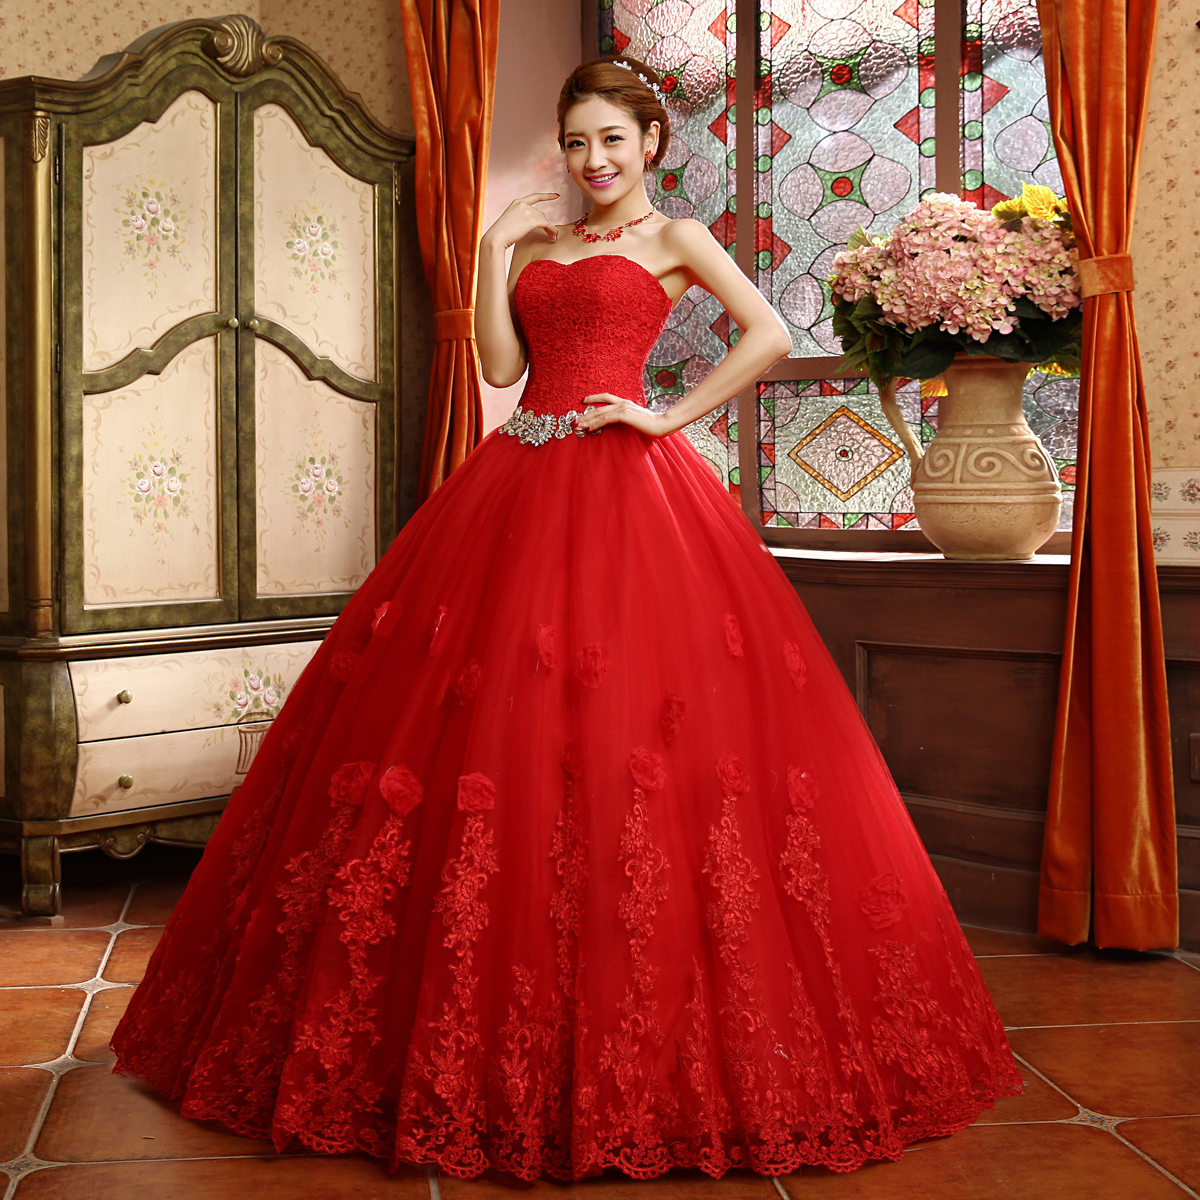 Online Ball Gowns Reviews - Online Shopping Online Ball Gowns ...